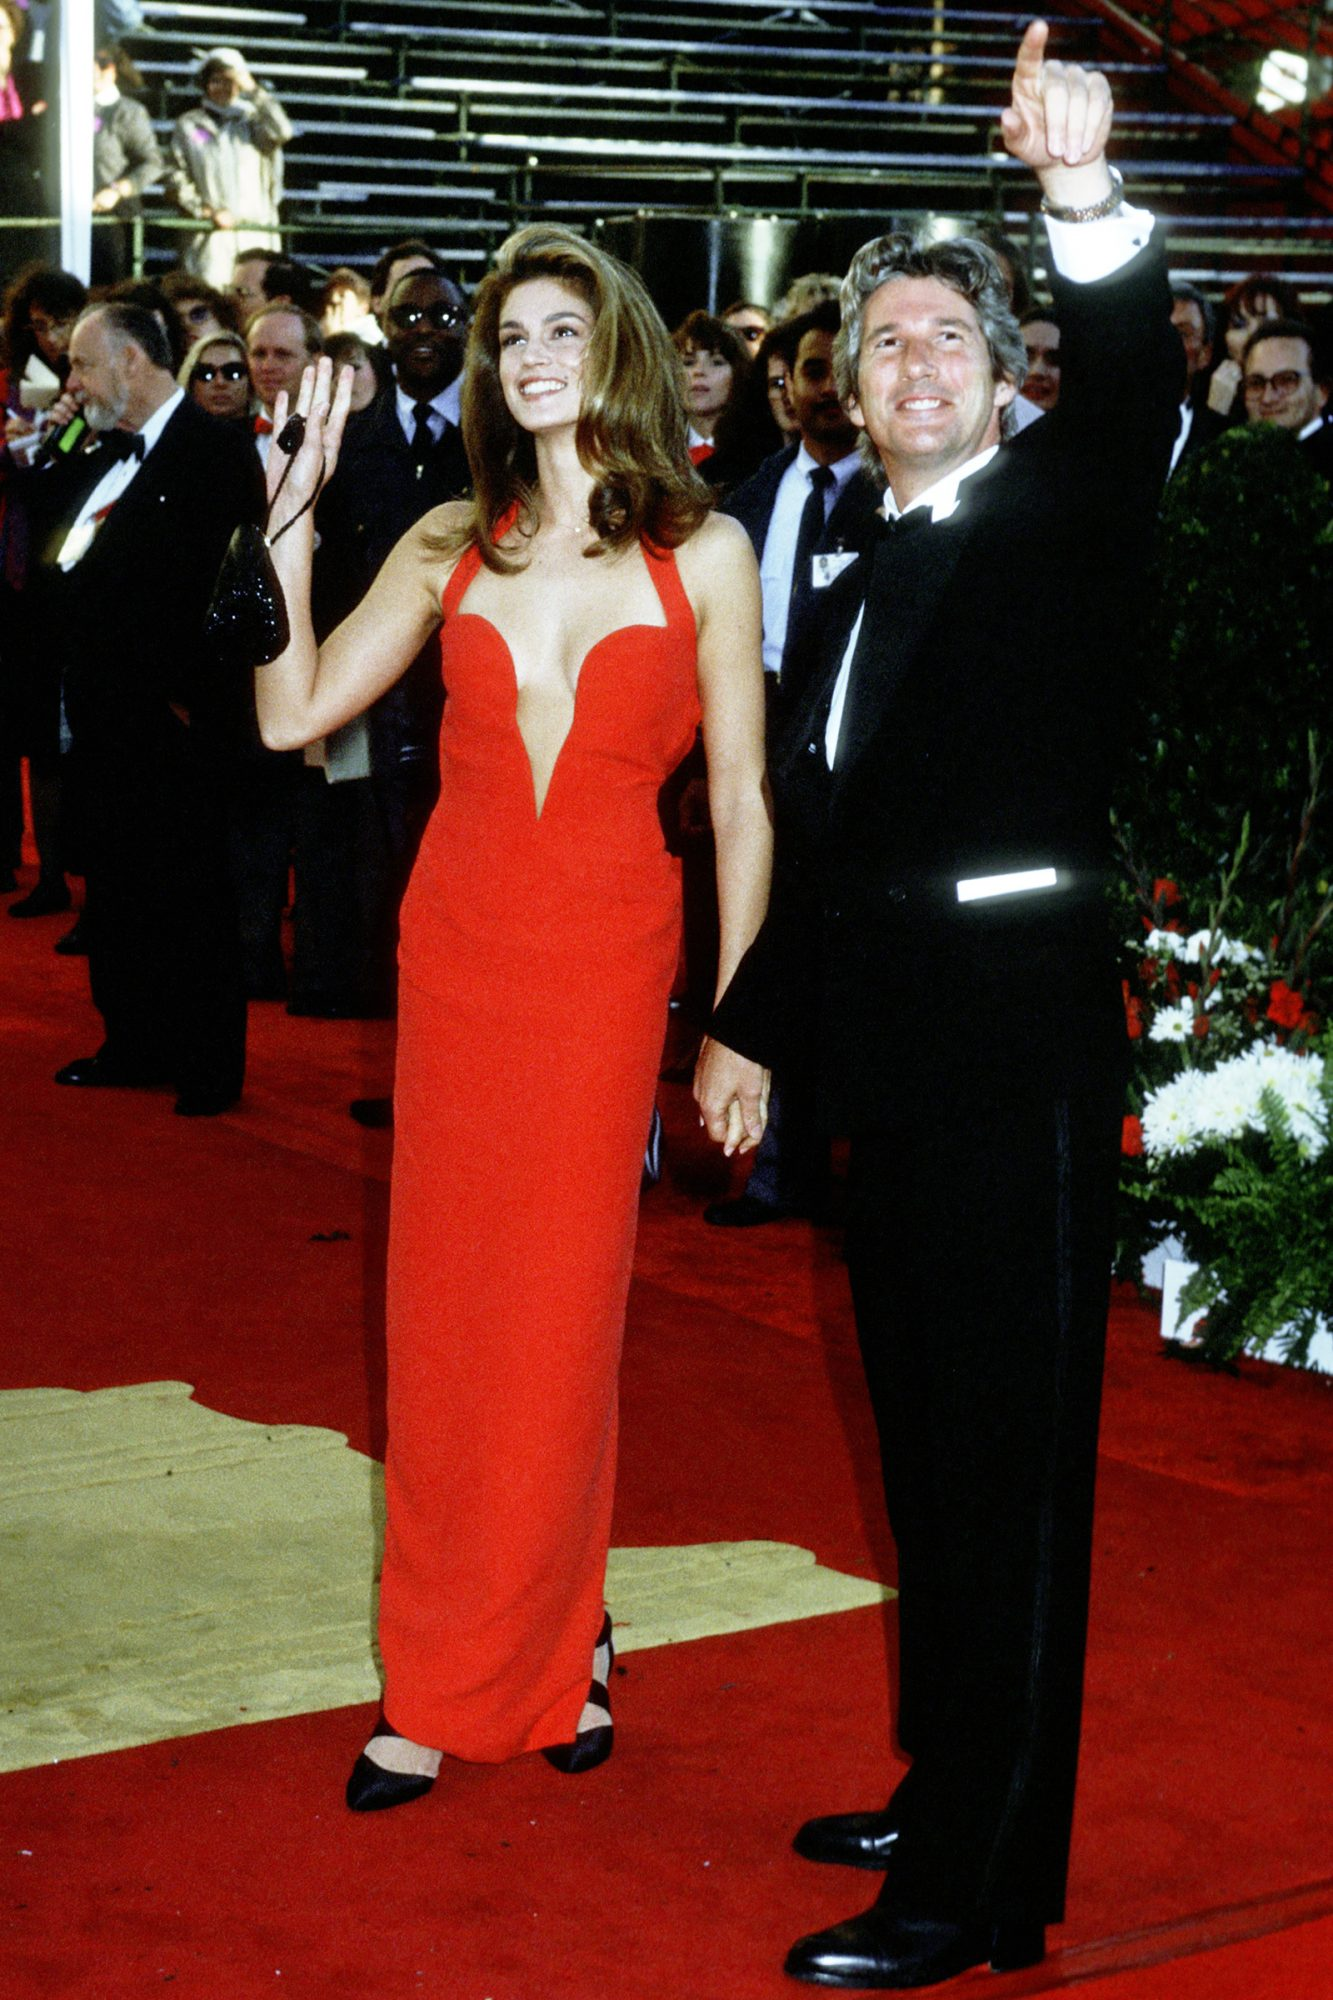 Cindy Crawford and Richard Gere 63rd Annual Academy Awards